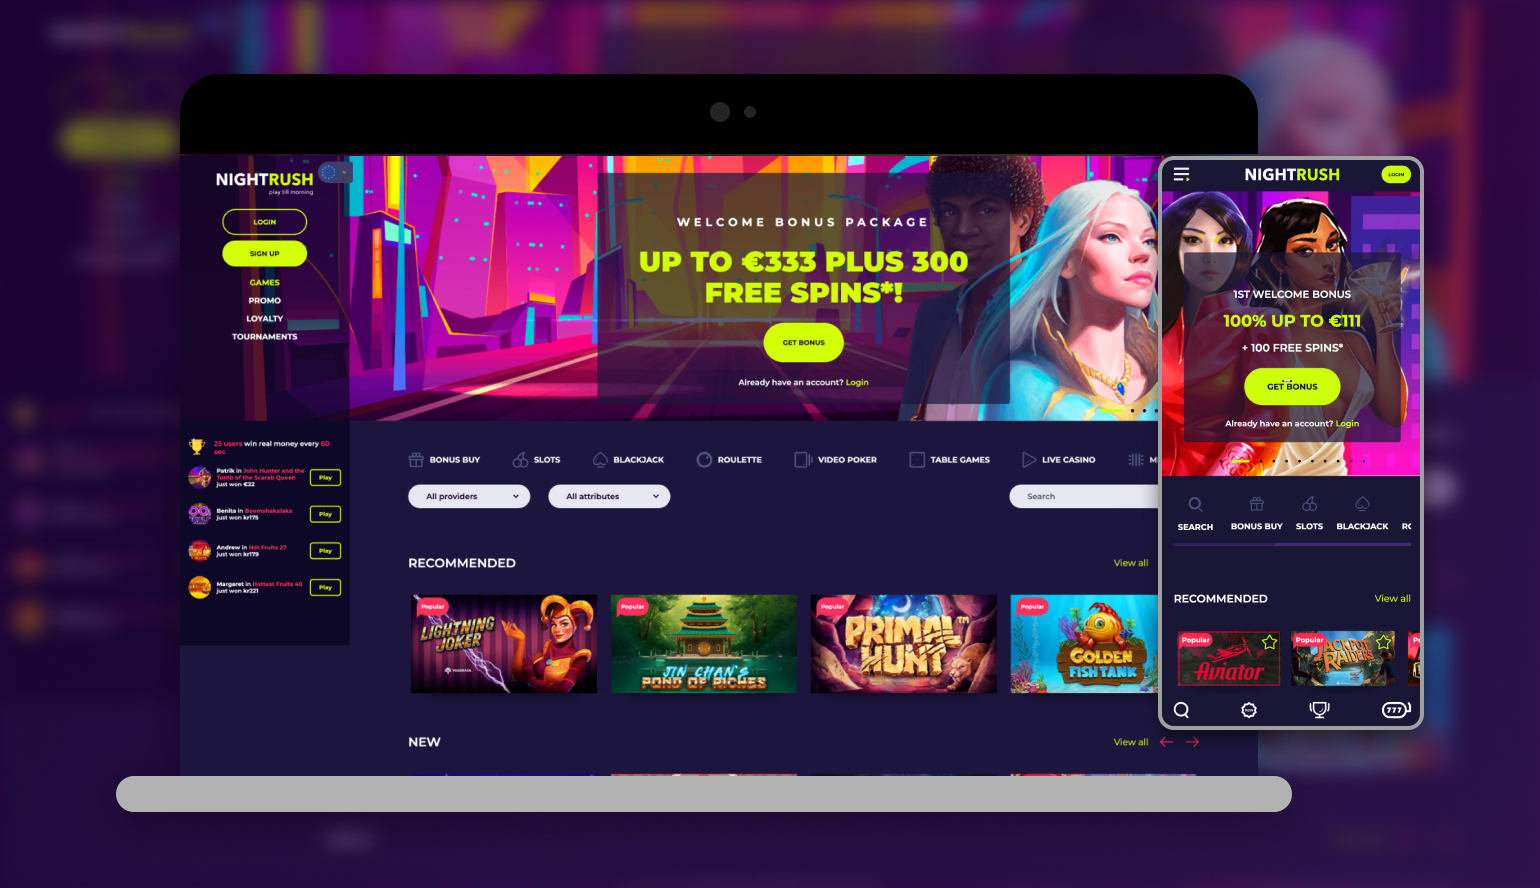 Nightrush casino on different devices